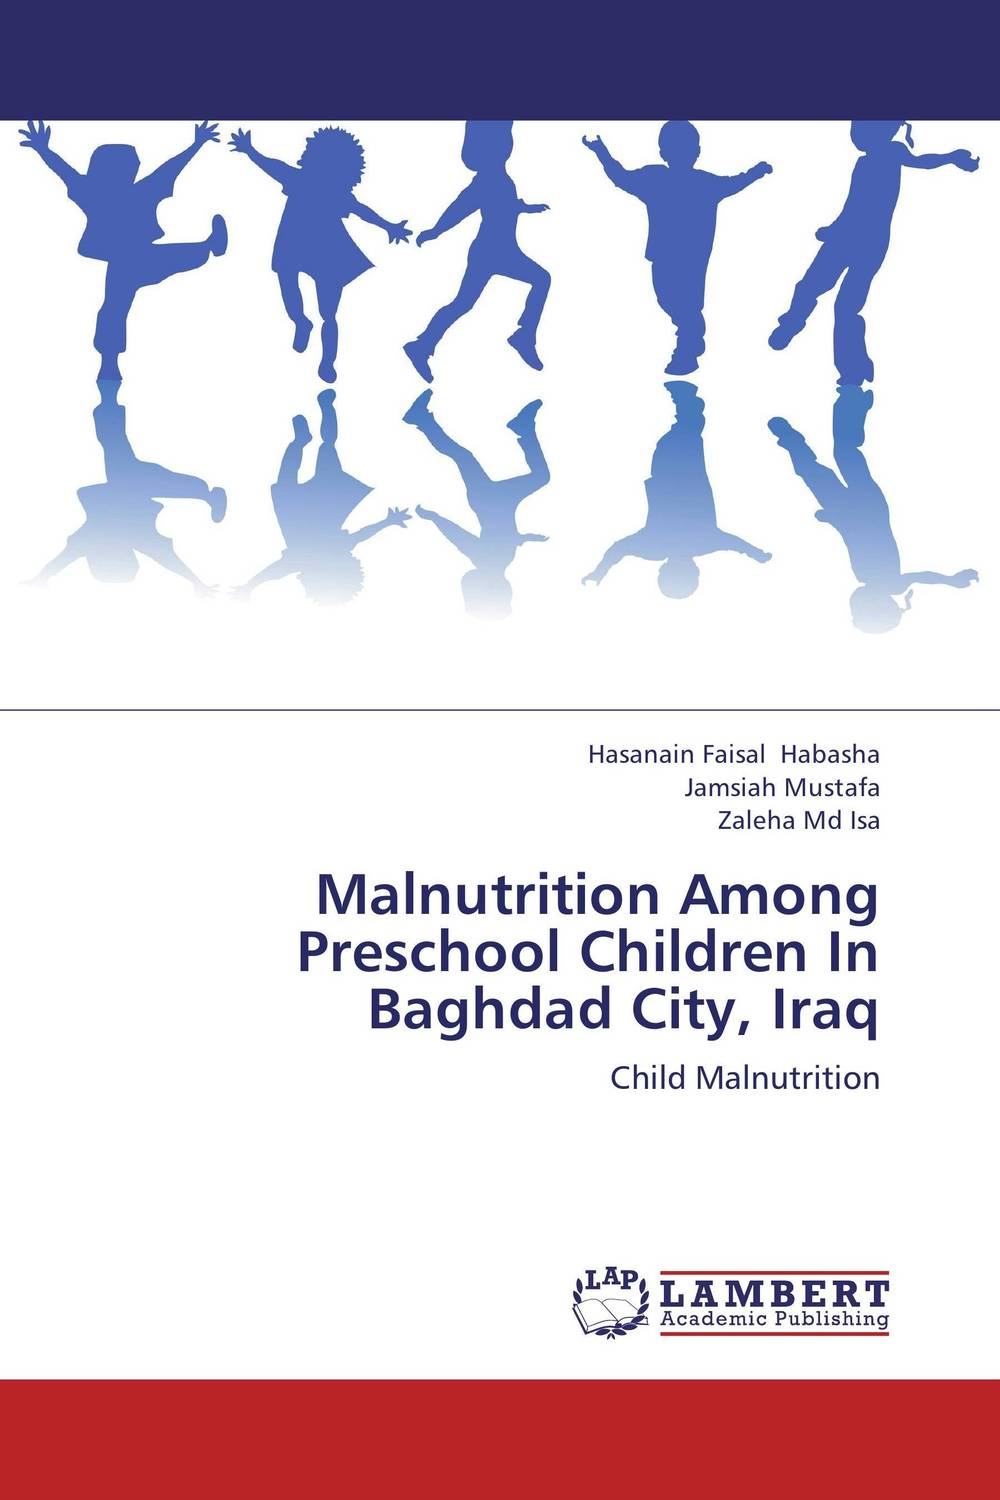 Malnutrition Among Preschool Children In Baghdad City, Iraq